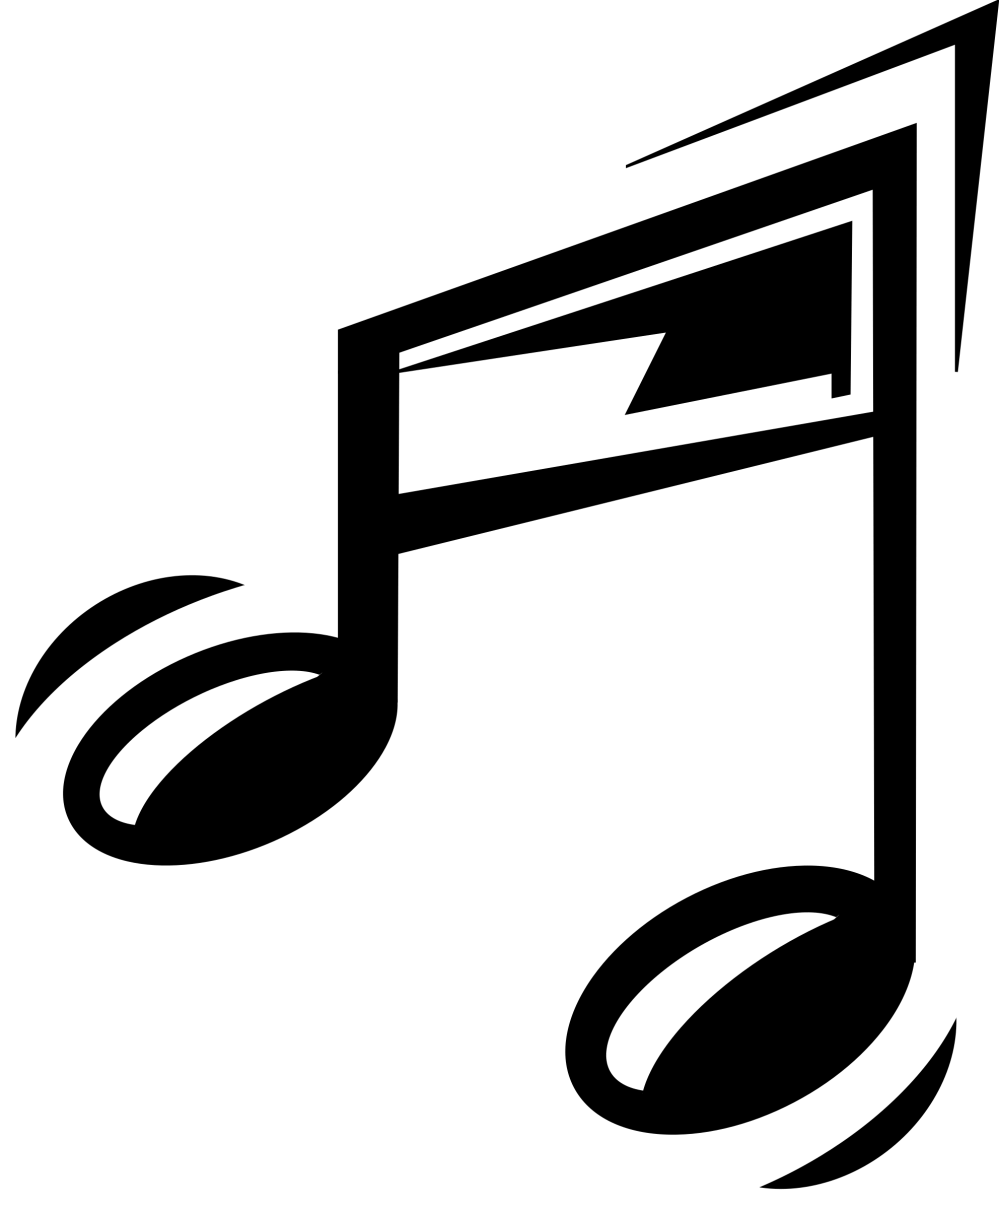 medium resolution of funny music note big image png musical clipart radio